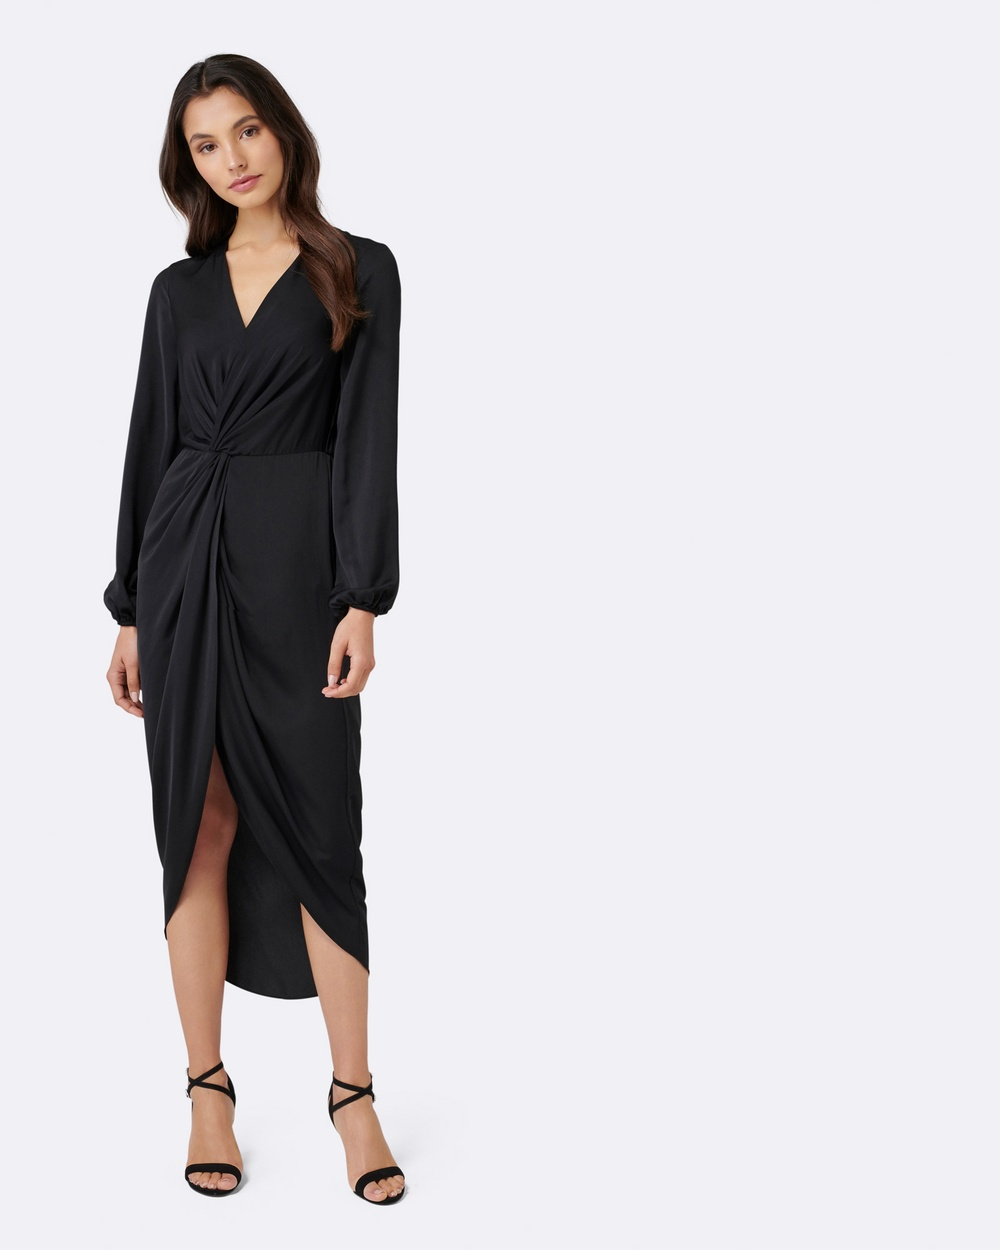 Forever New Petite Petite Serena Drape Long Sleeve Dress Dresses Black Petite Serena Drape Long-Sleeve Dress